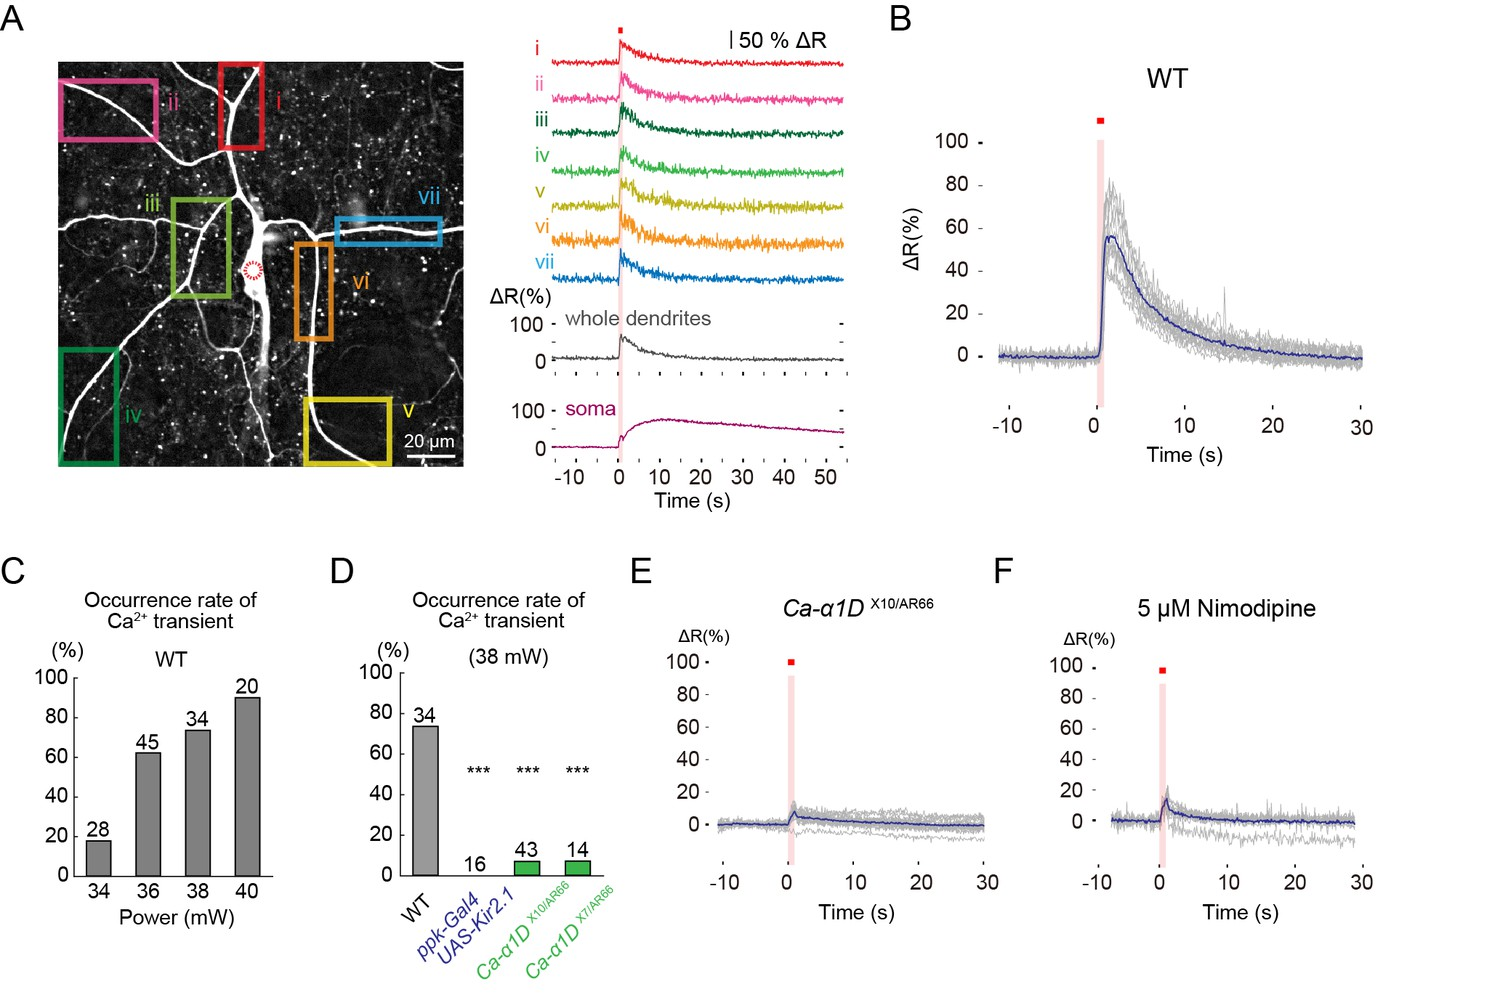 Neuronal Processing Of Noxious Thermal Stimuli Mediated By Dendritic Ultrasonic Generator Circuit Gt 100w 220v L Type Vgcc Dependent Global Ca2 Transients Occur In Class Iv Neurons Upon Stimulation